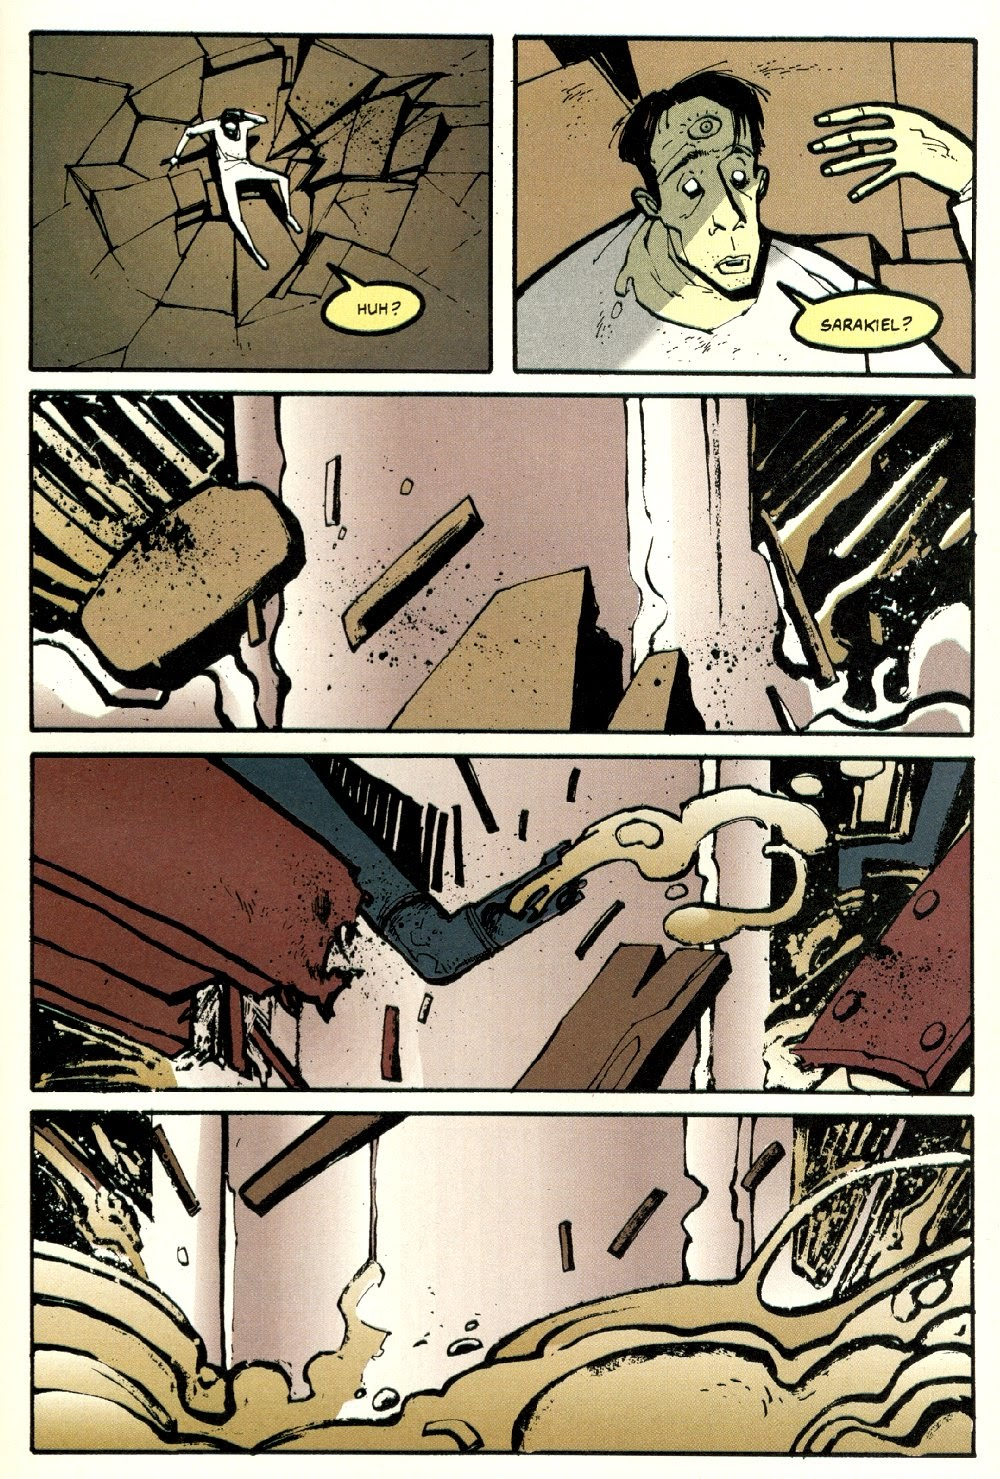 Read online Ted McKeever's Metropol comic -  Issue #8 - 23